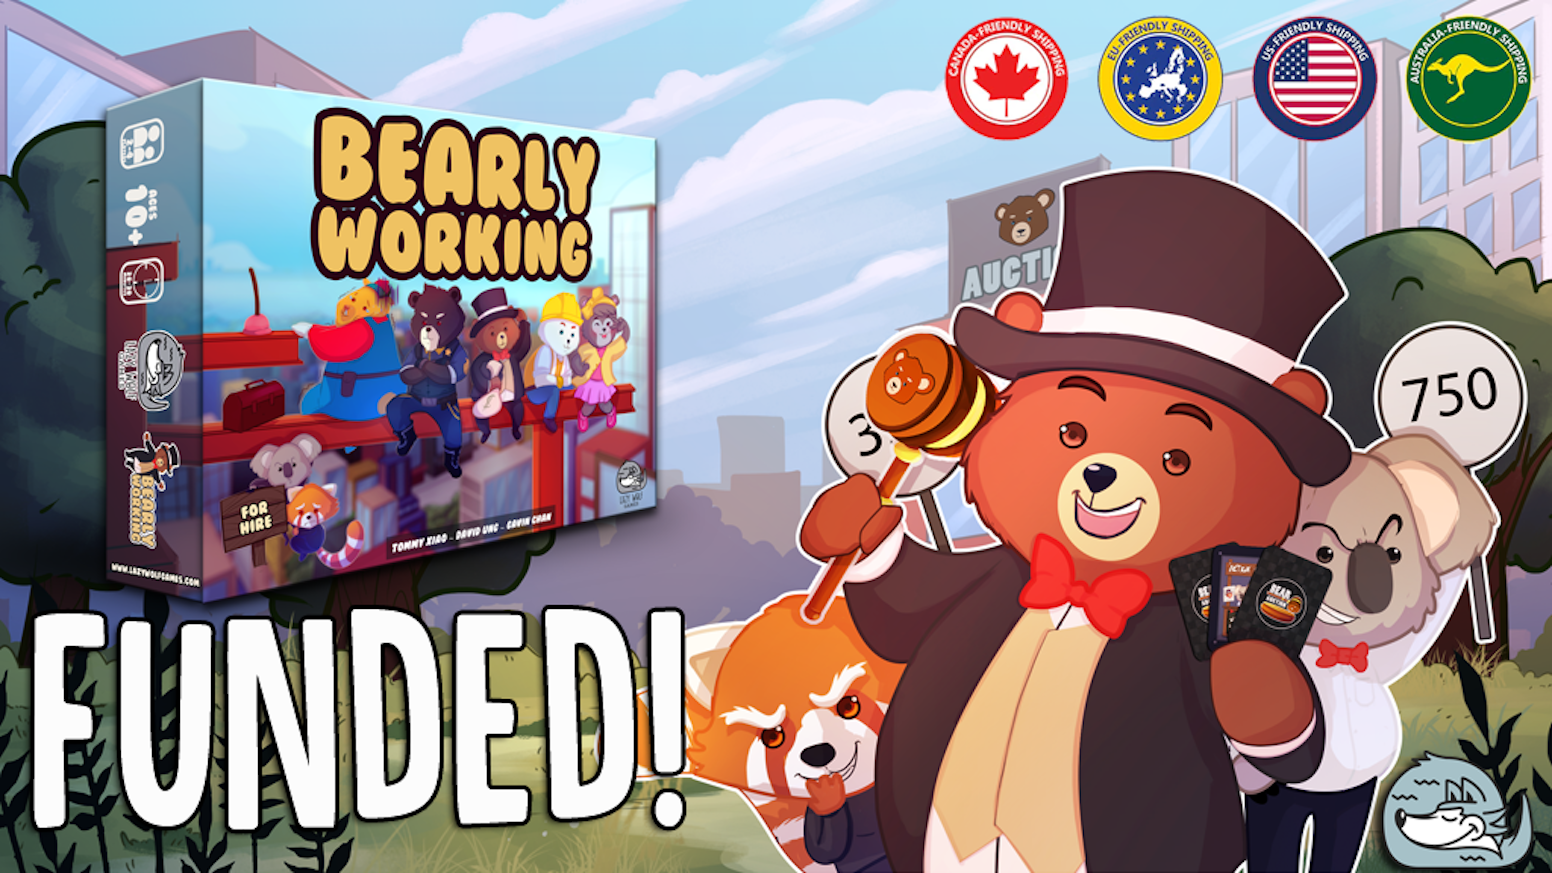 A fast paced open-auction game for 2 to 4 players where you purchase workers and hire evil koalas to sabotage your opponents.